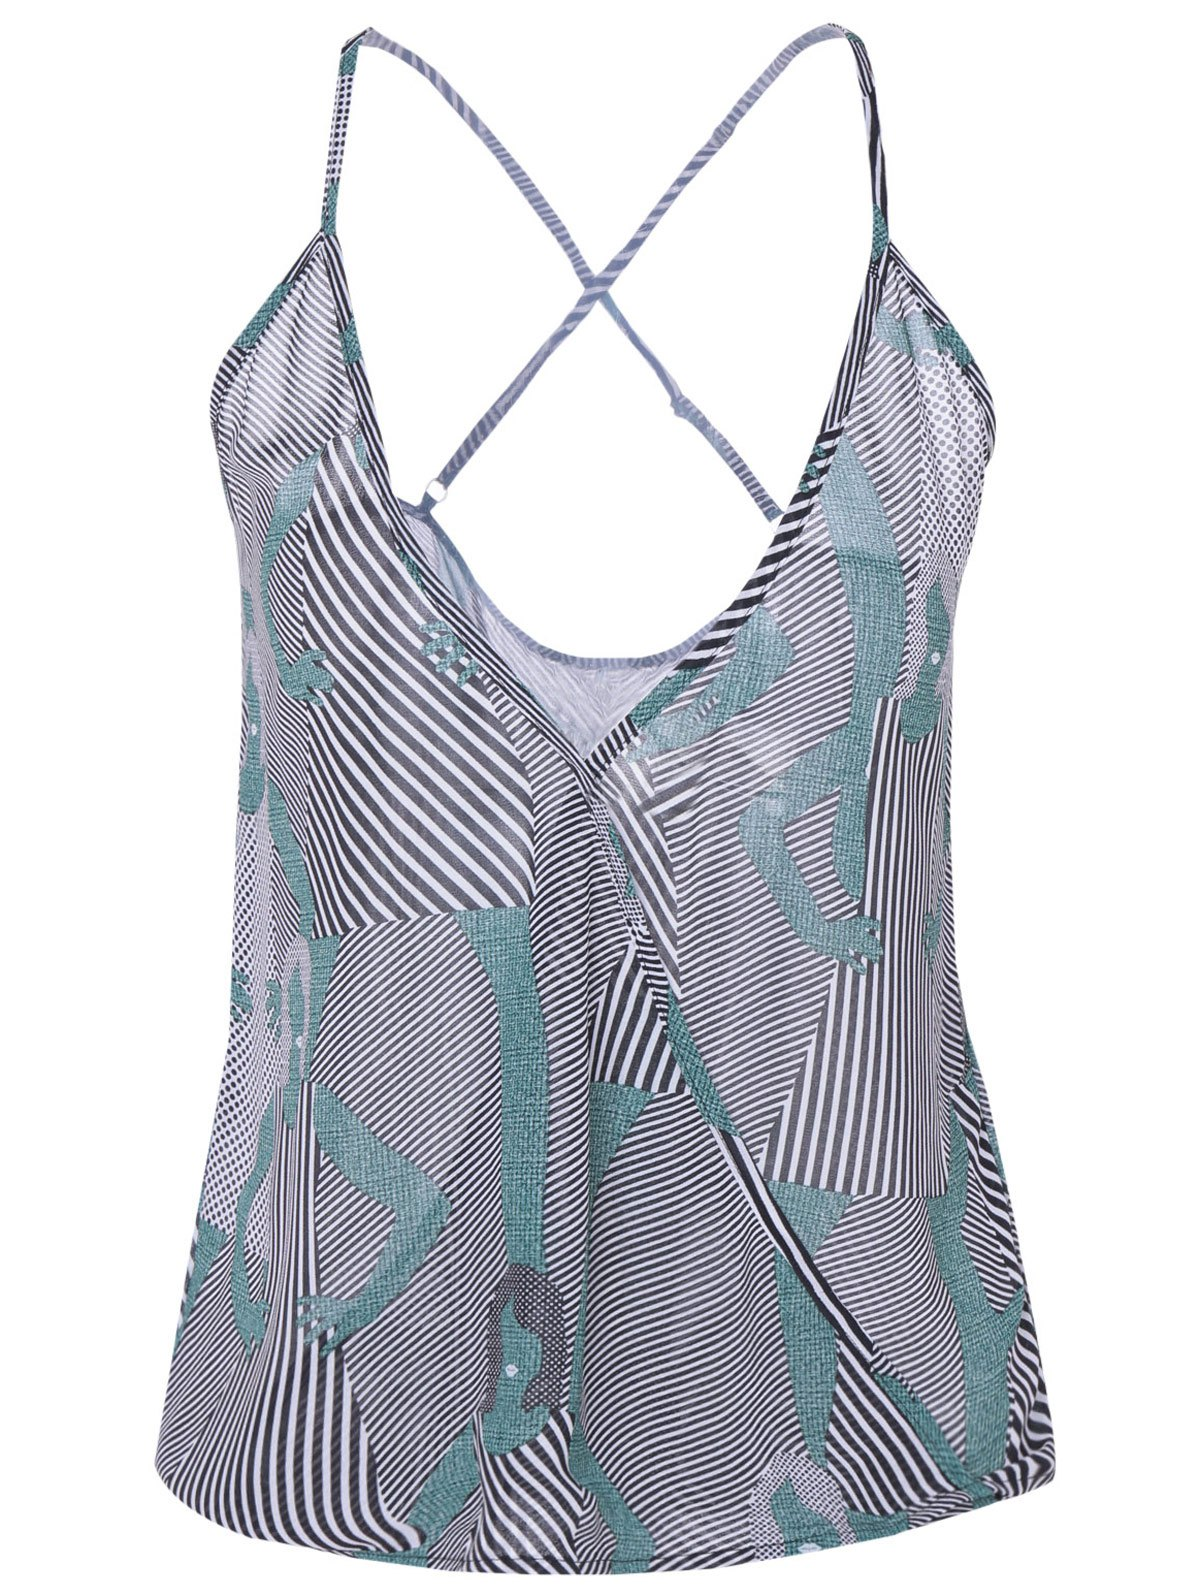 Trendy Printed Striped Camisole Tank Top